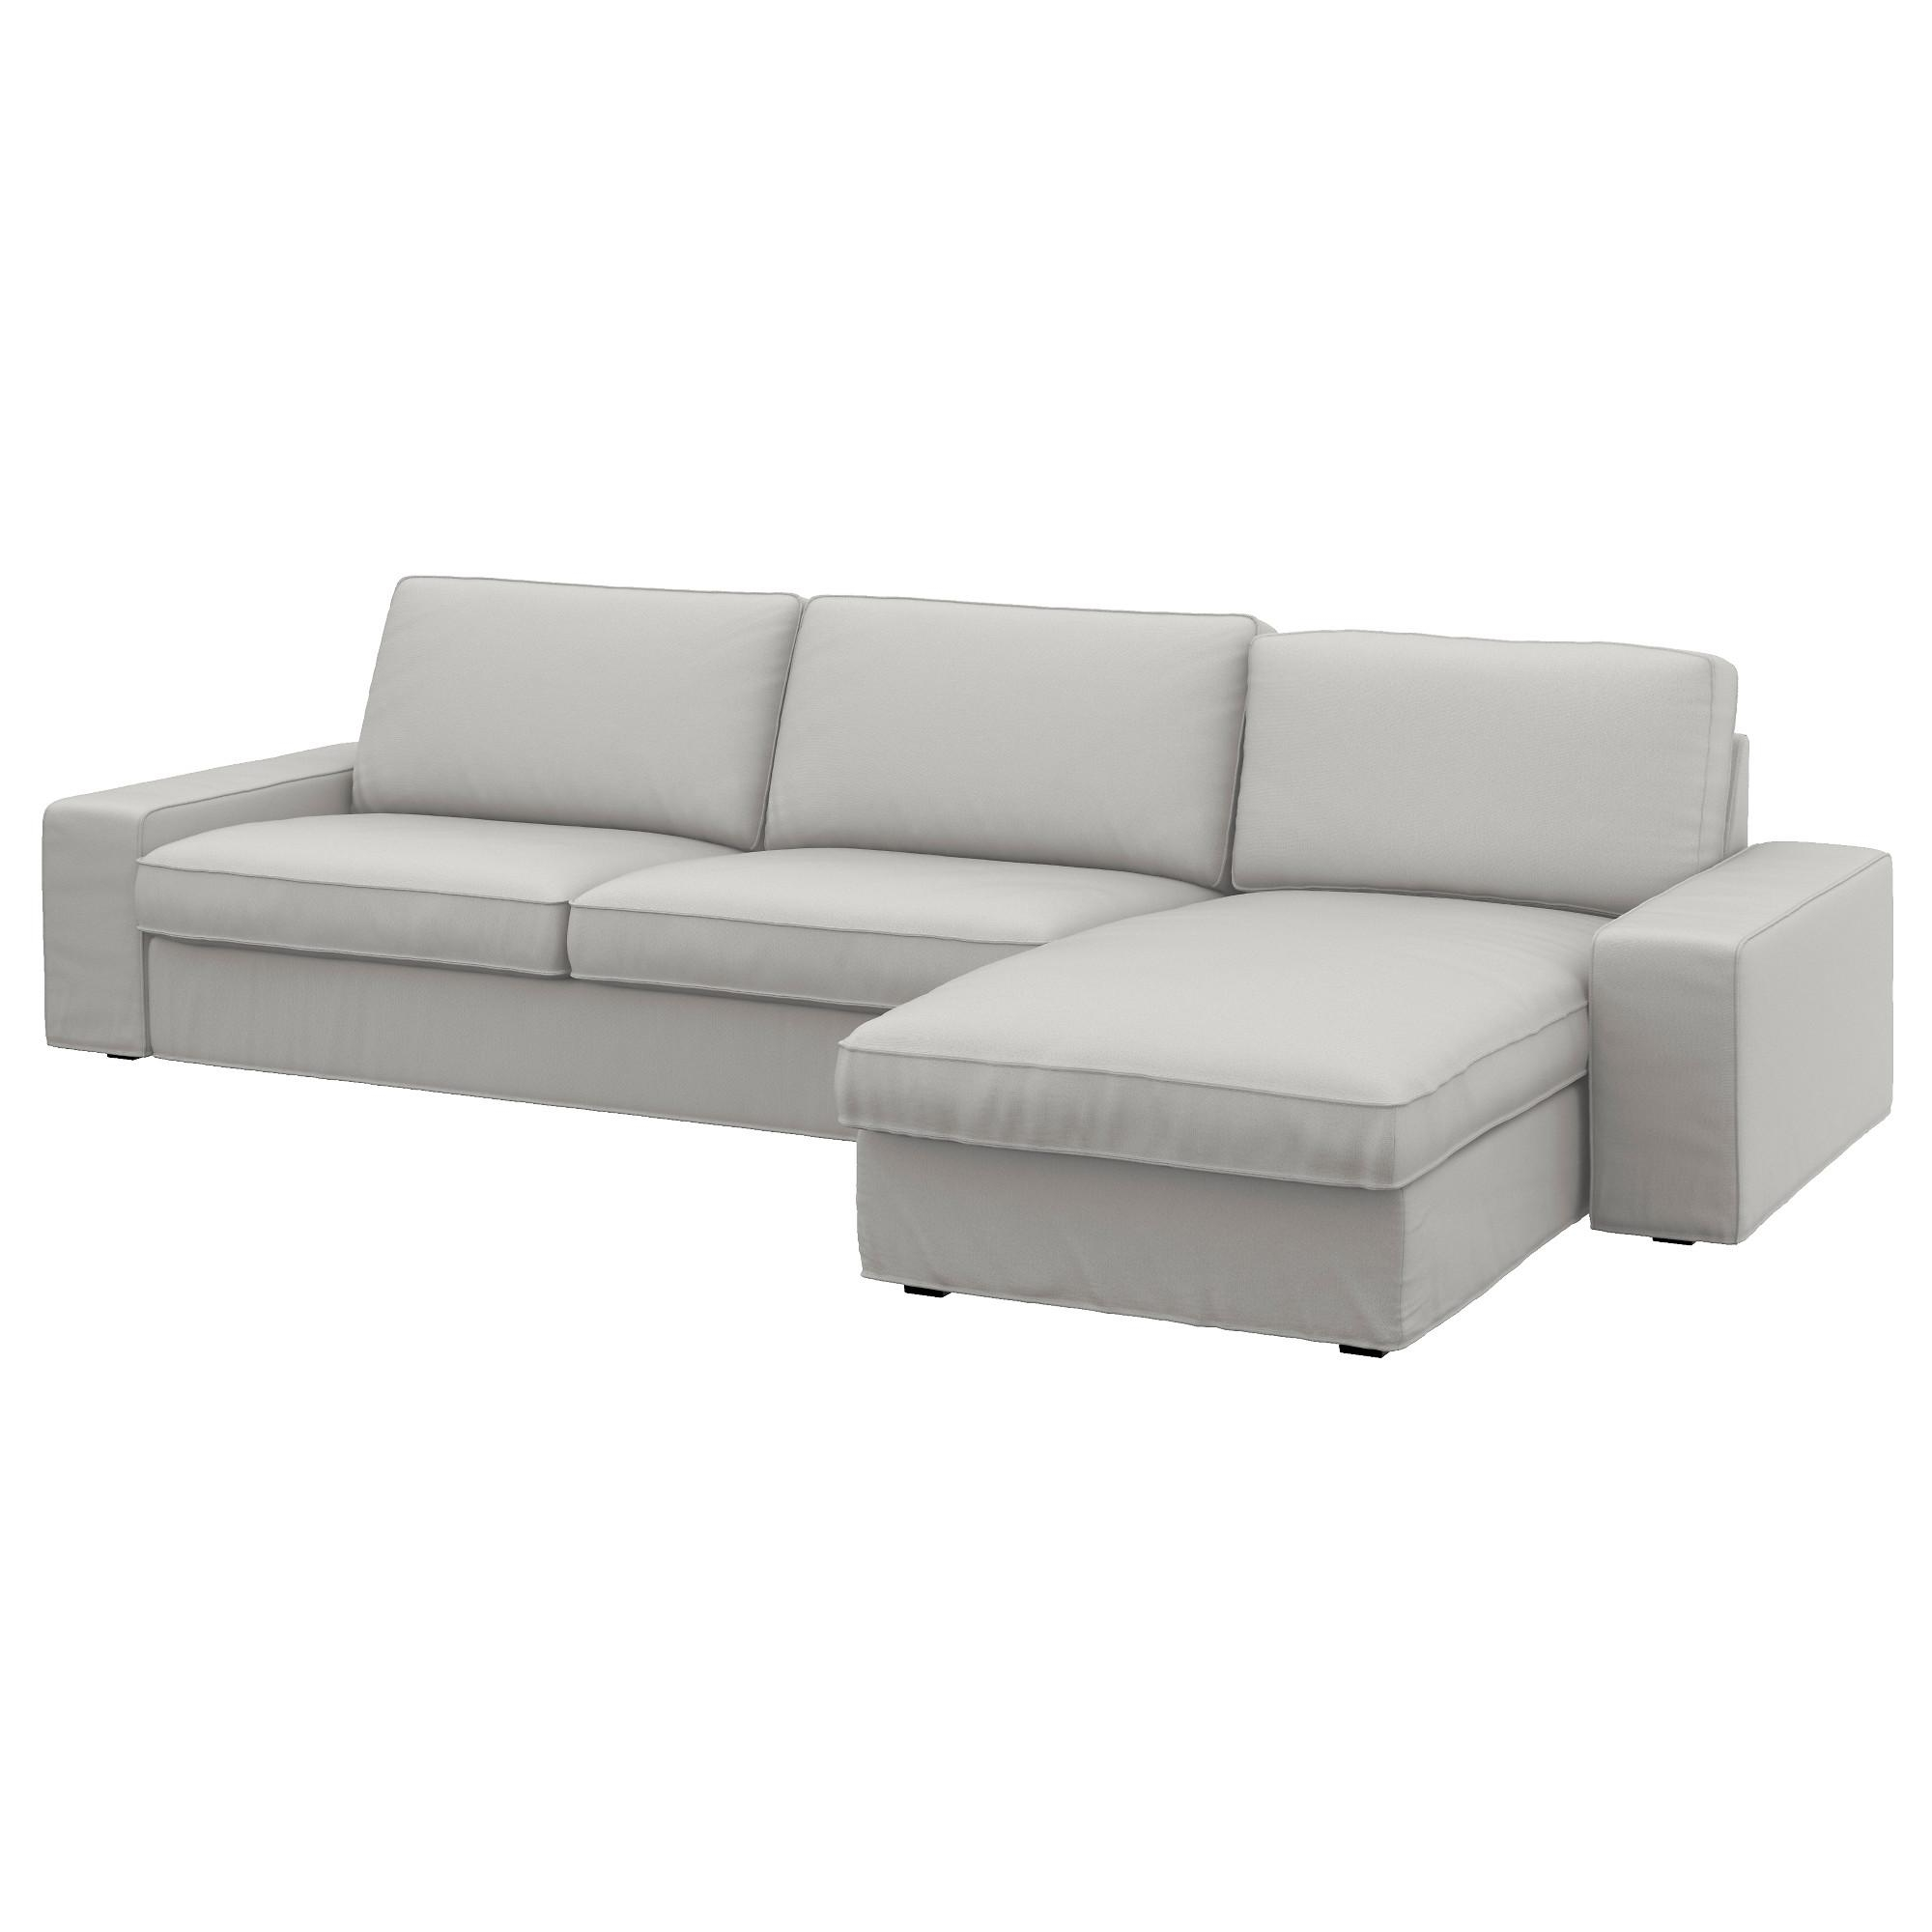 Sofas Center : Narrowepth Sofa Sofas For Small Spaces Table Intended For Narrow Depth Sofas (Image 15 of 20)